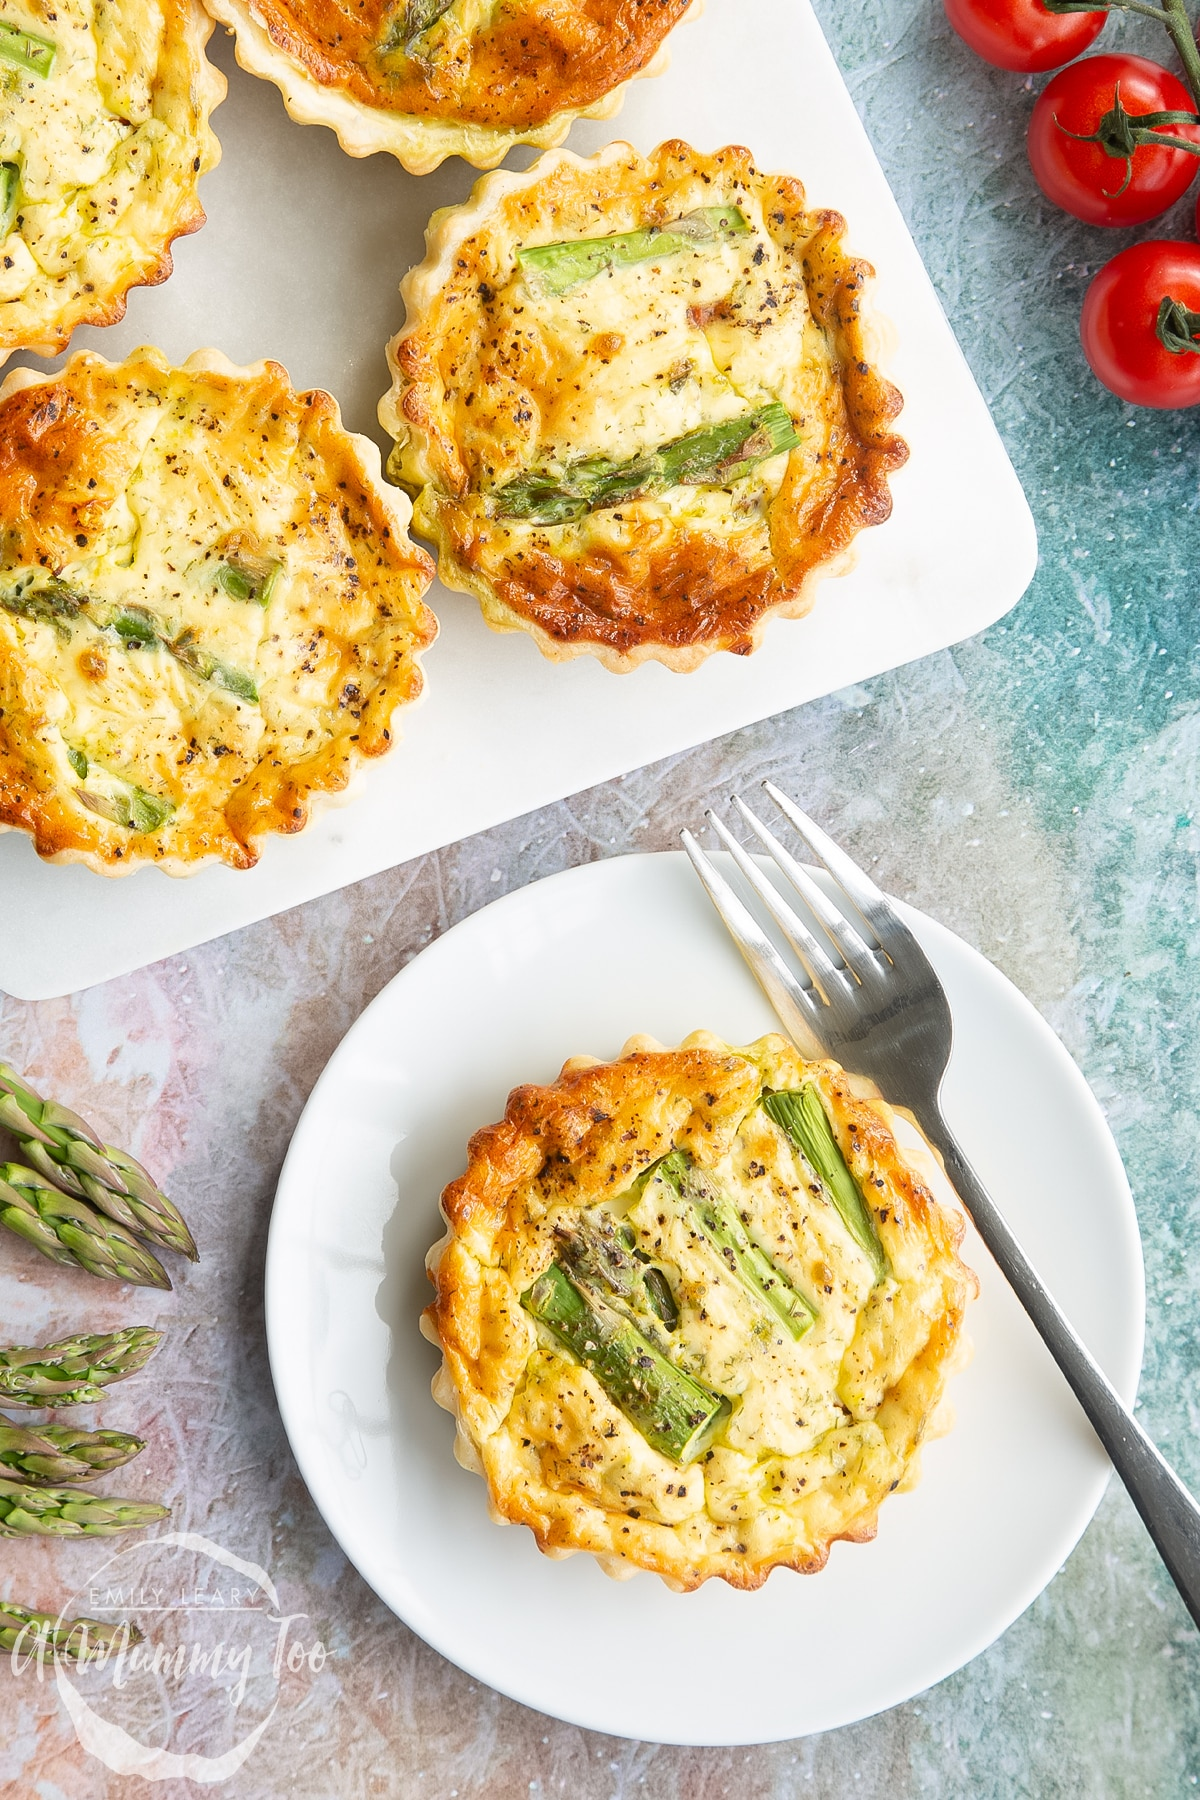 Asparagus tartlets on a white plate with a fork in close up.